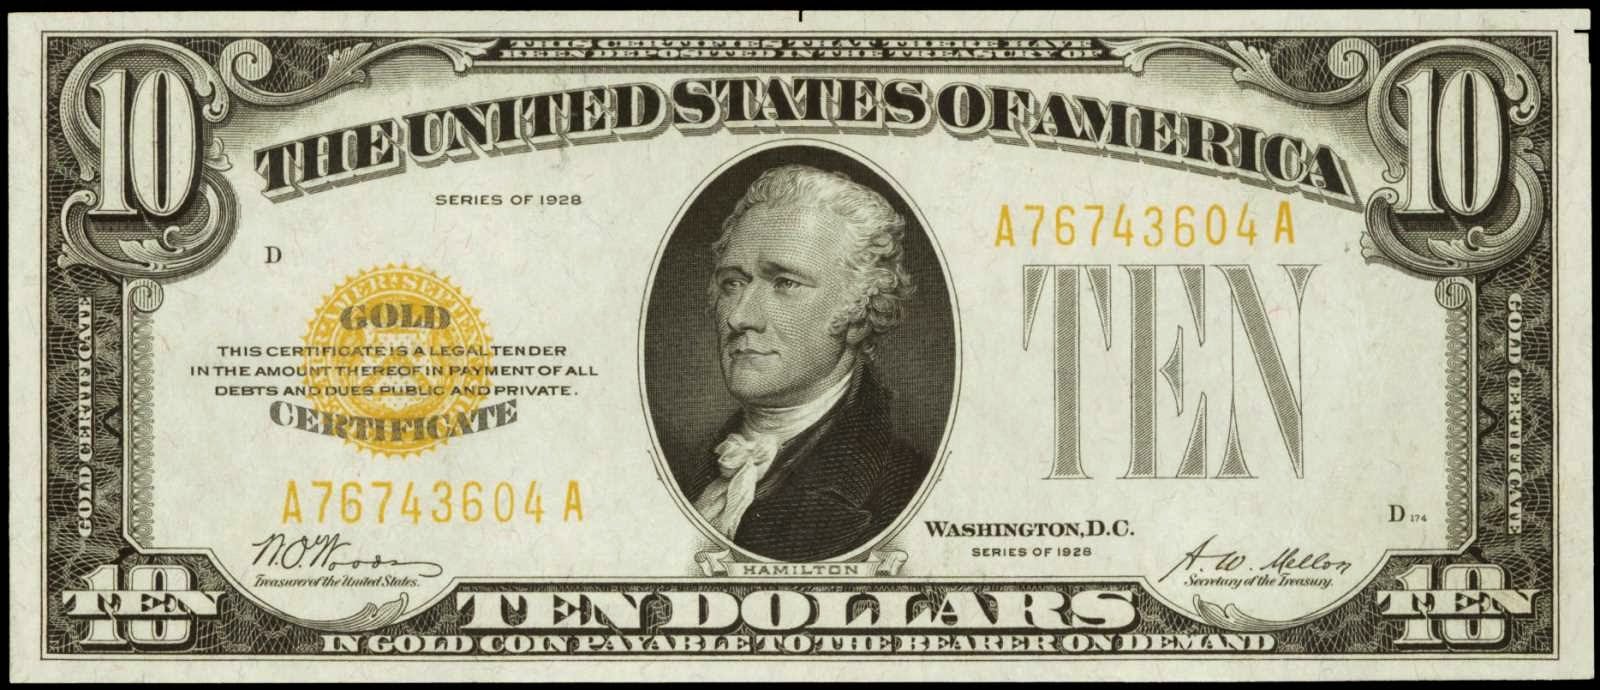 Ten Facts About Alexander Hamilton On The 10 Bill The